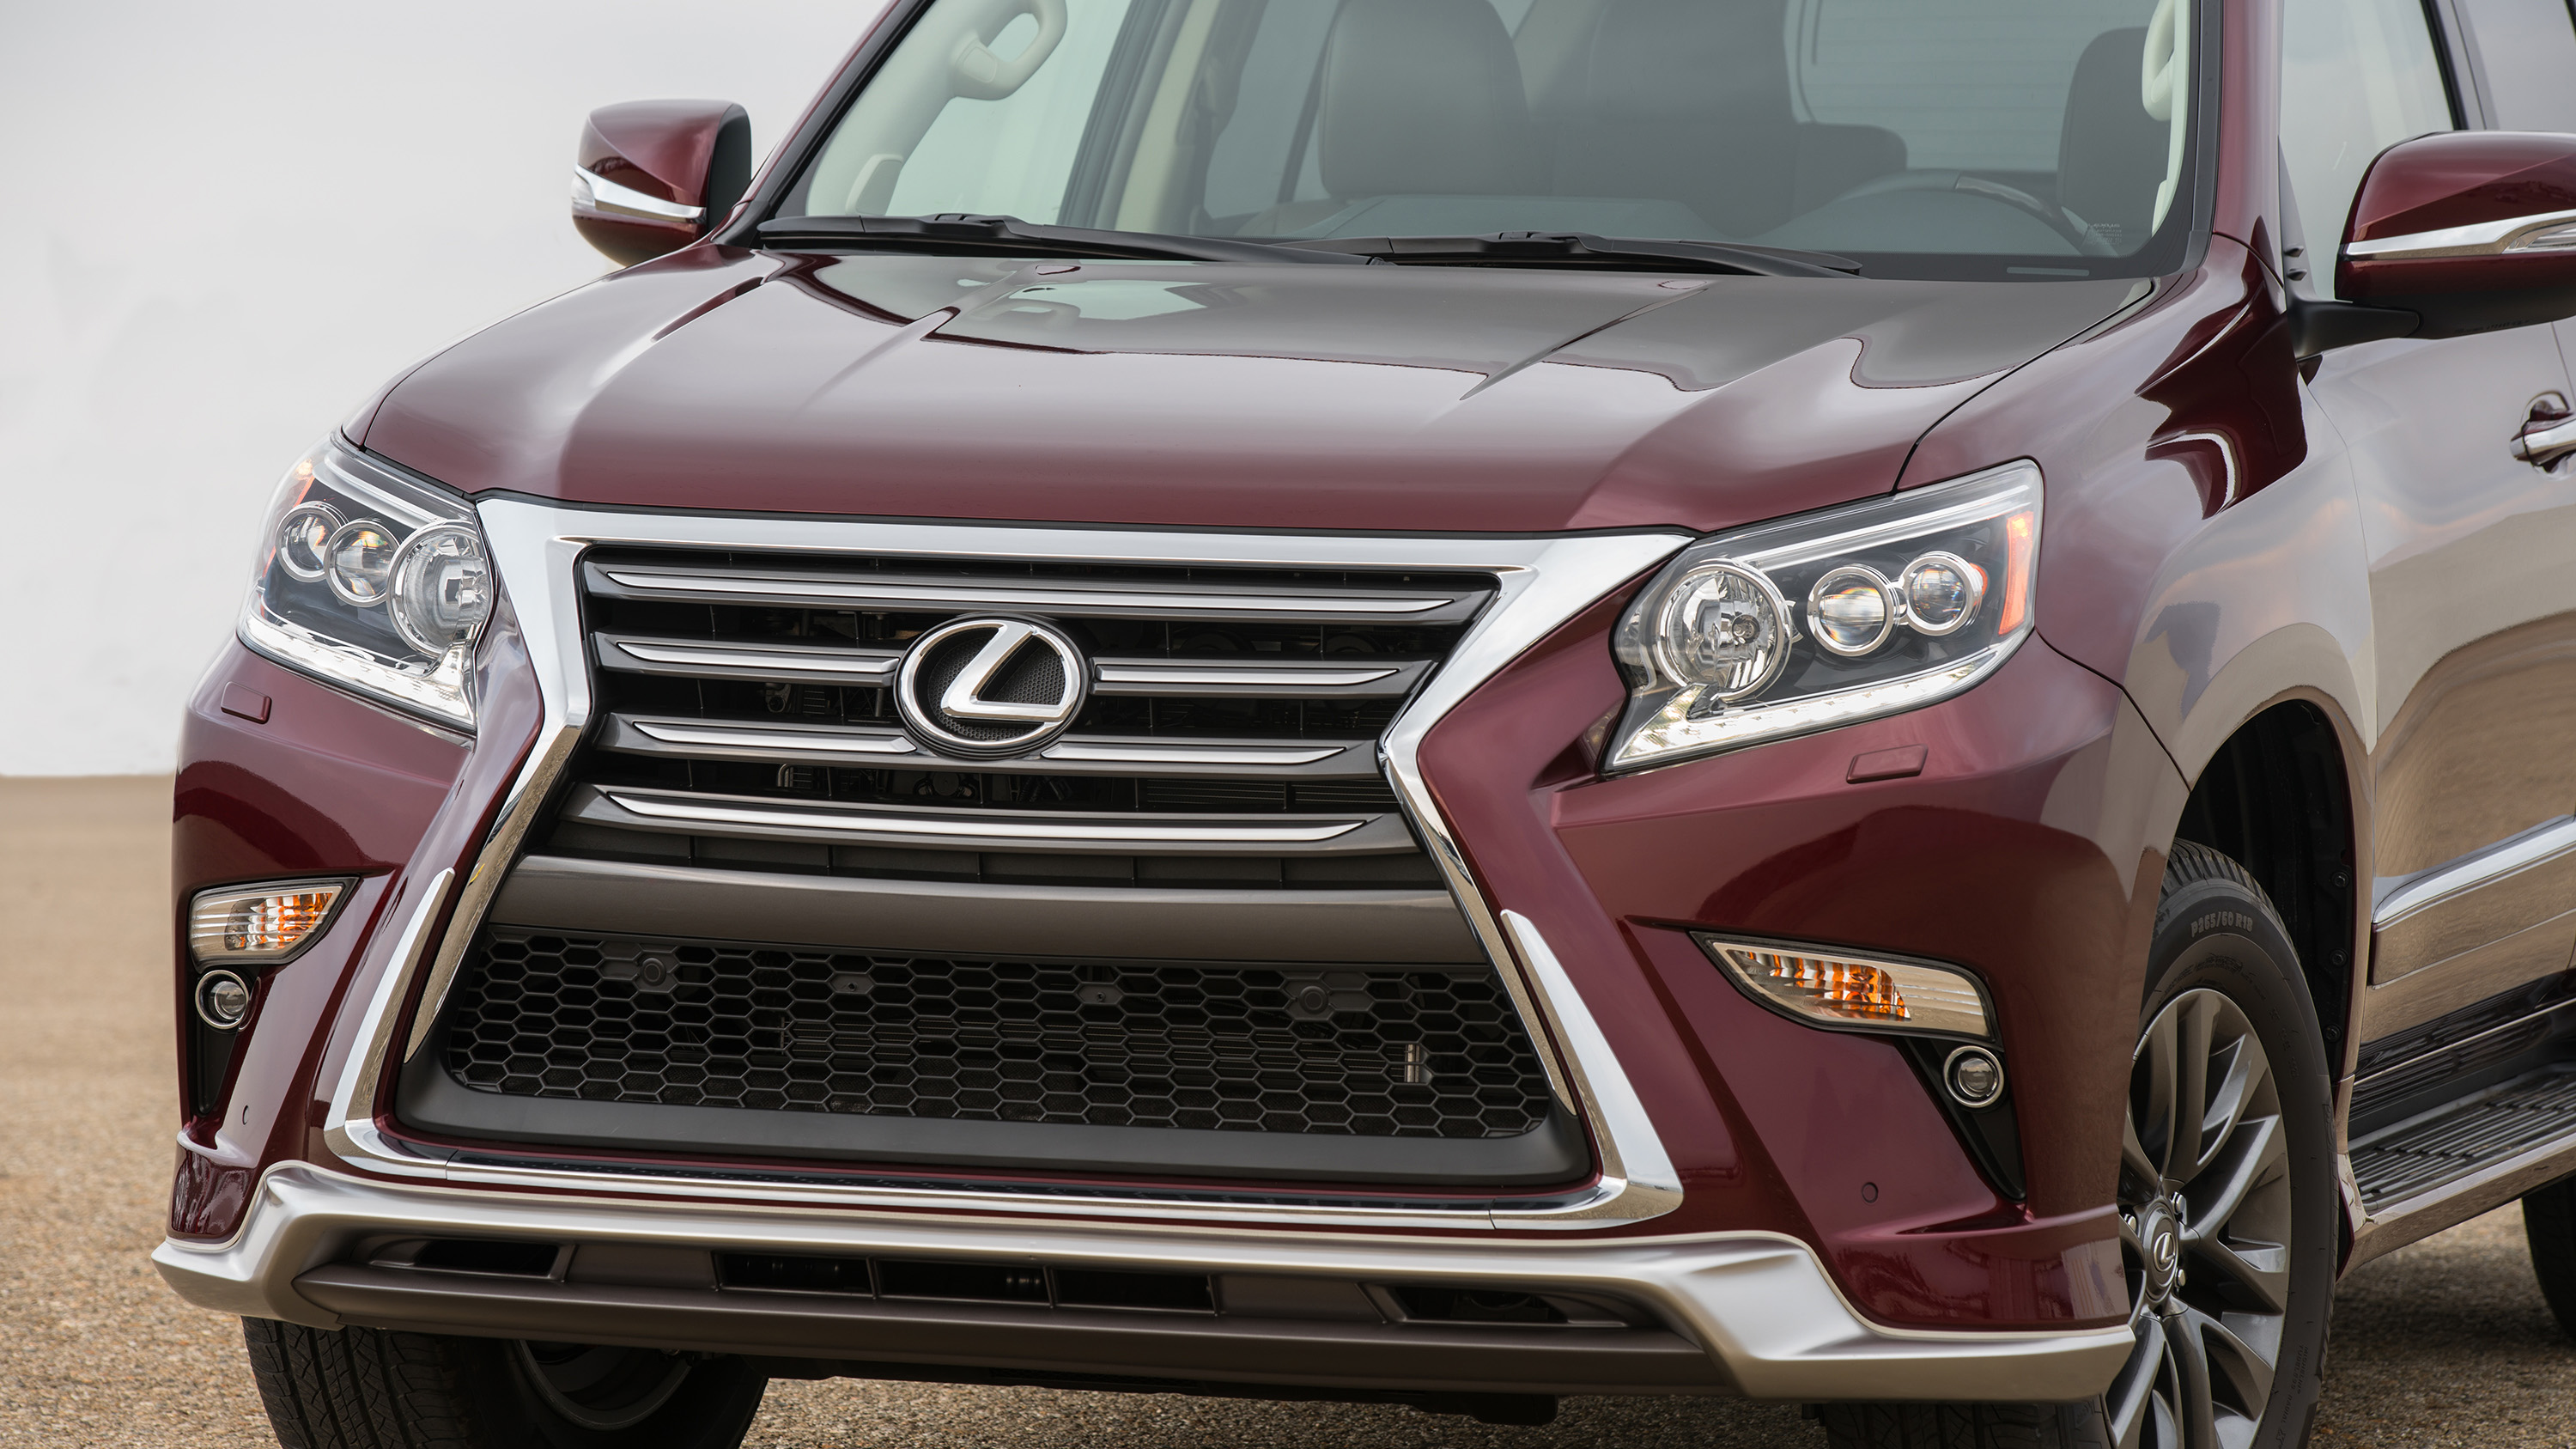 2019 Lexus GX 460 Drivers' Notes Review | An ancient, yet luxurious SUV